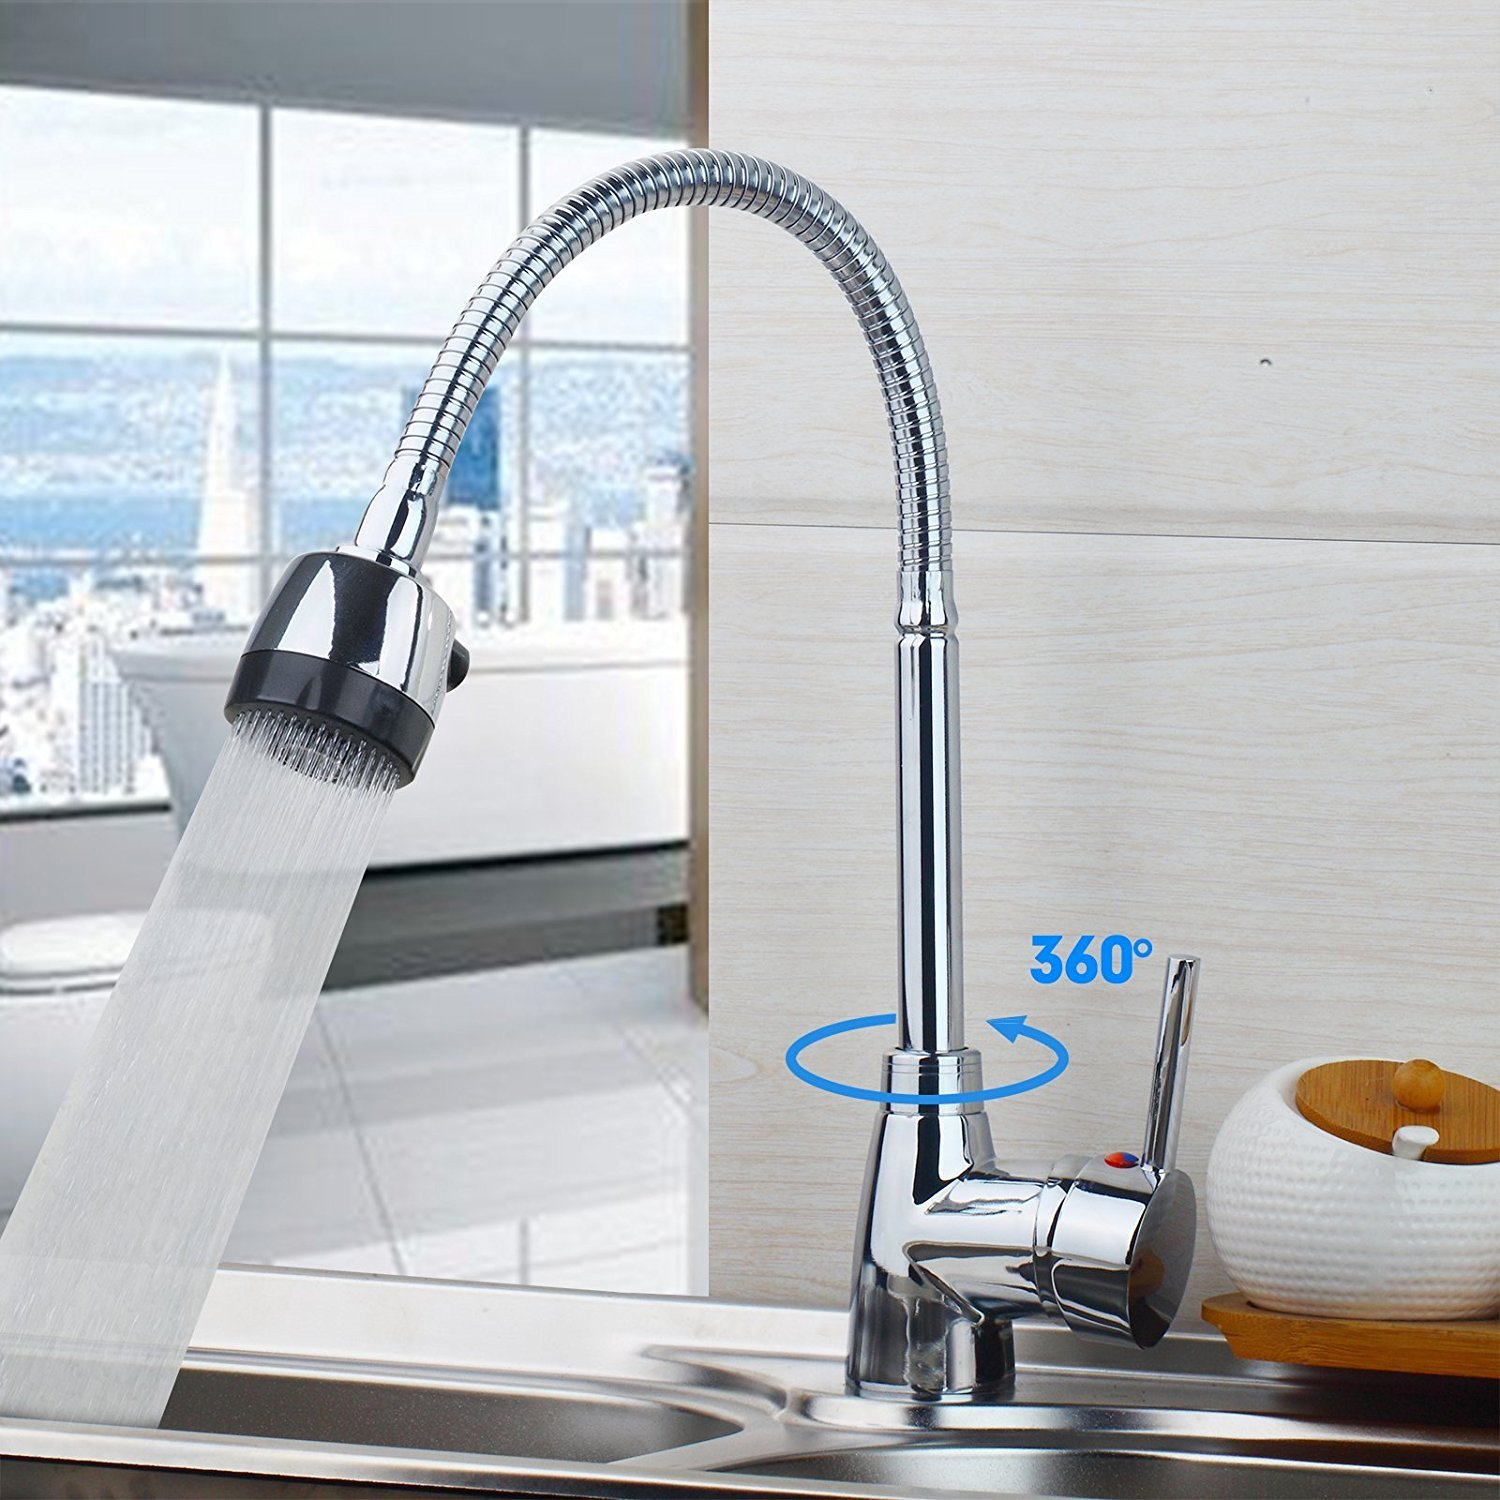 Inchant Single Handle Single Hole Polished Chrome Flexible Pull Down Spray Kitchen Sink Faucet Deck Mount Basin kitchen Mixer Tap by Inchant